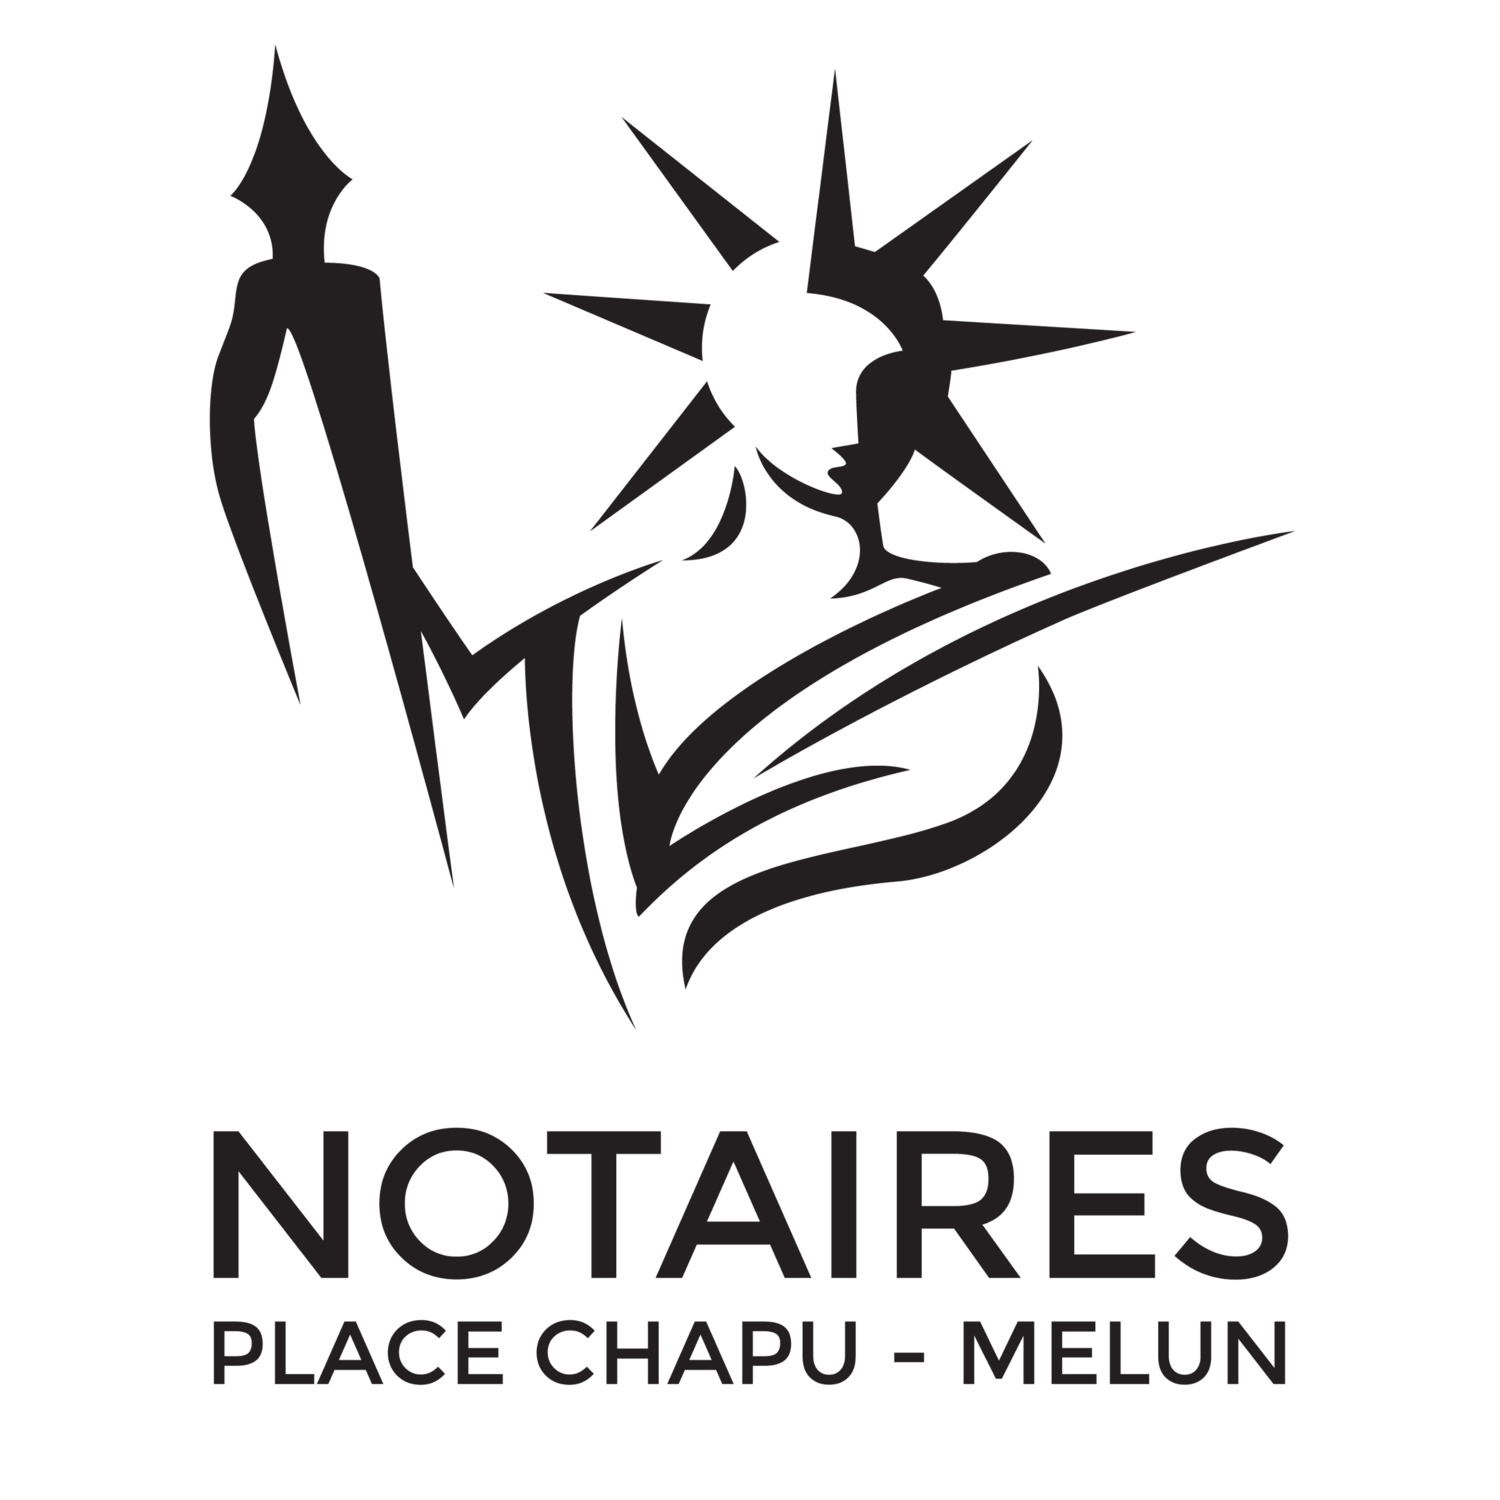 NOTAIRES - Place Chapu - Melun